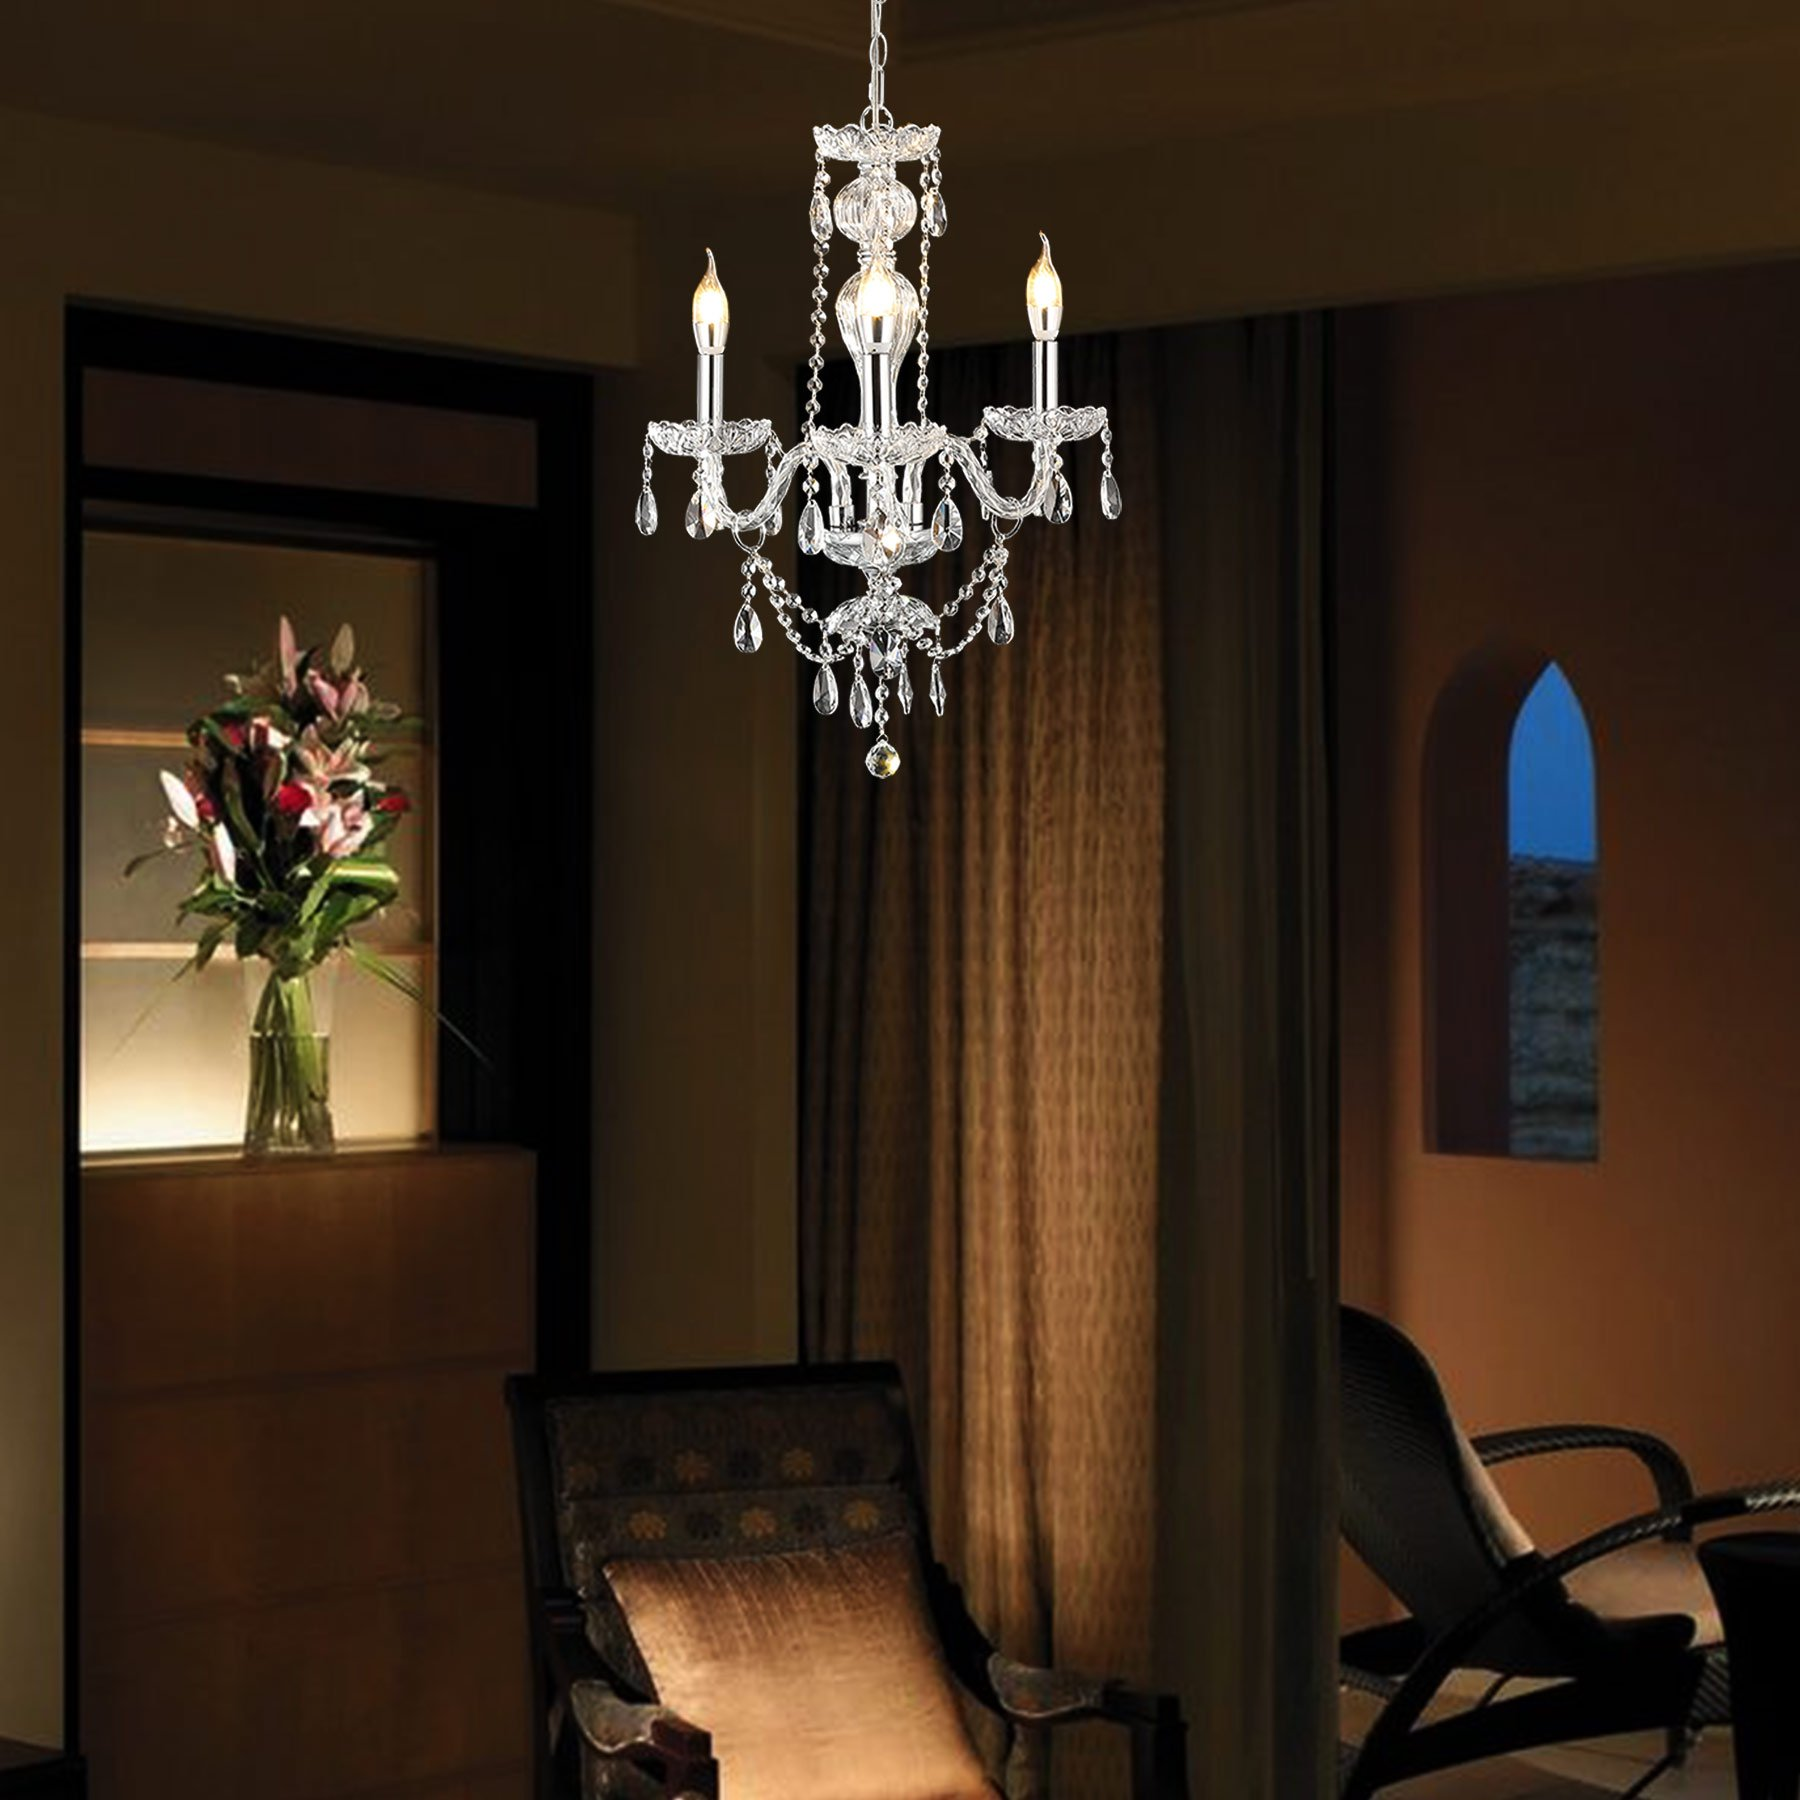 CO-Z 3-Light K9 Small Crystal Chandelier, Modern Contemporary Candle Style Ceiling Lighting Fixture with Rotatable Arm for Dining Room Kitchen Living Room Sitting Room Bedroom